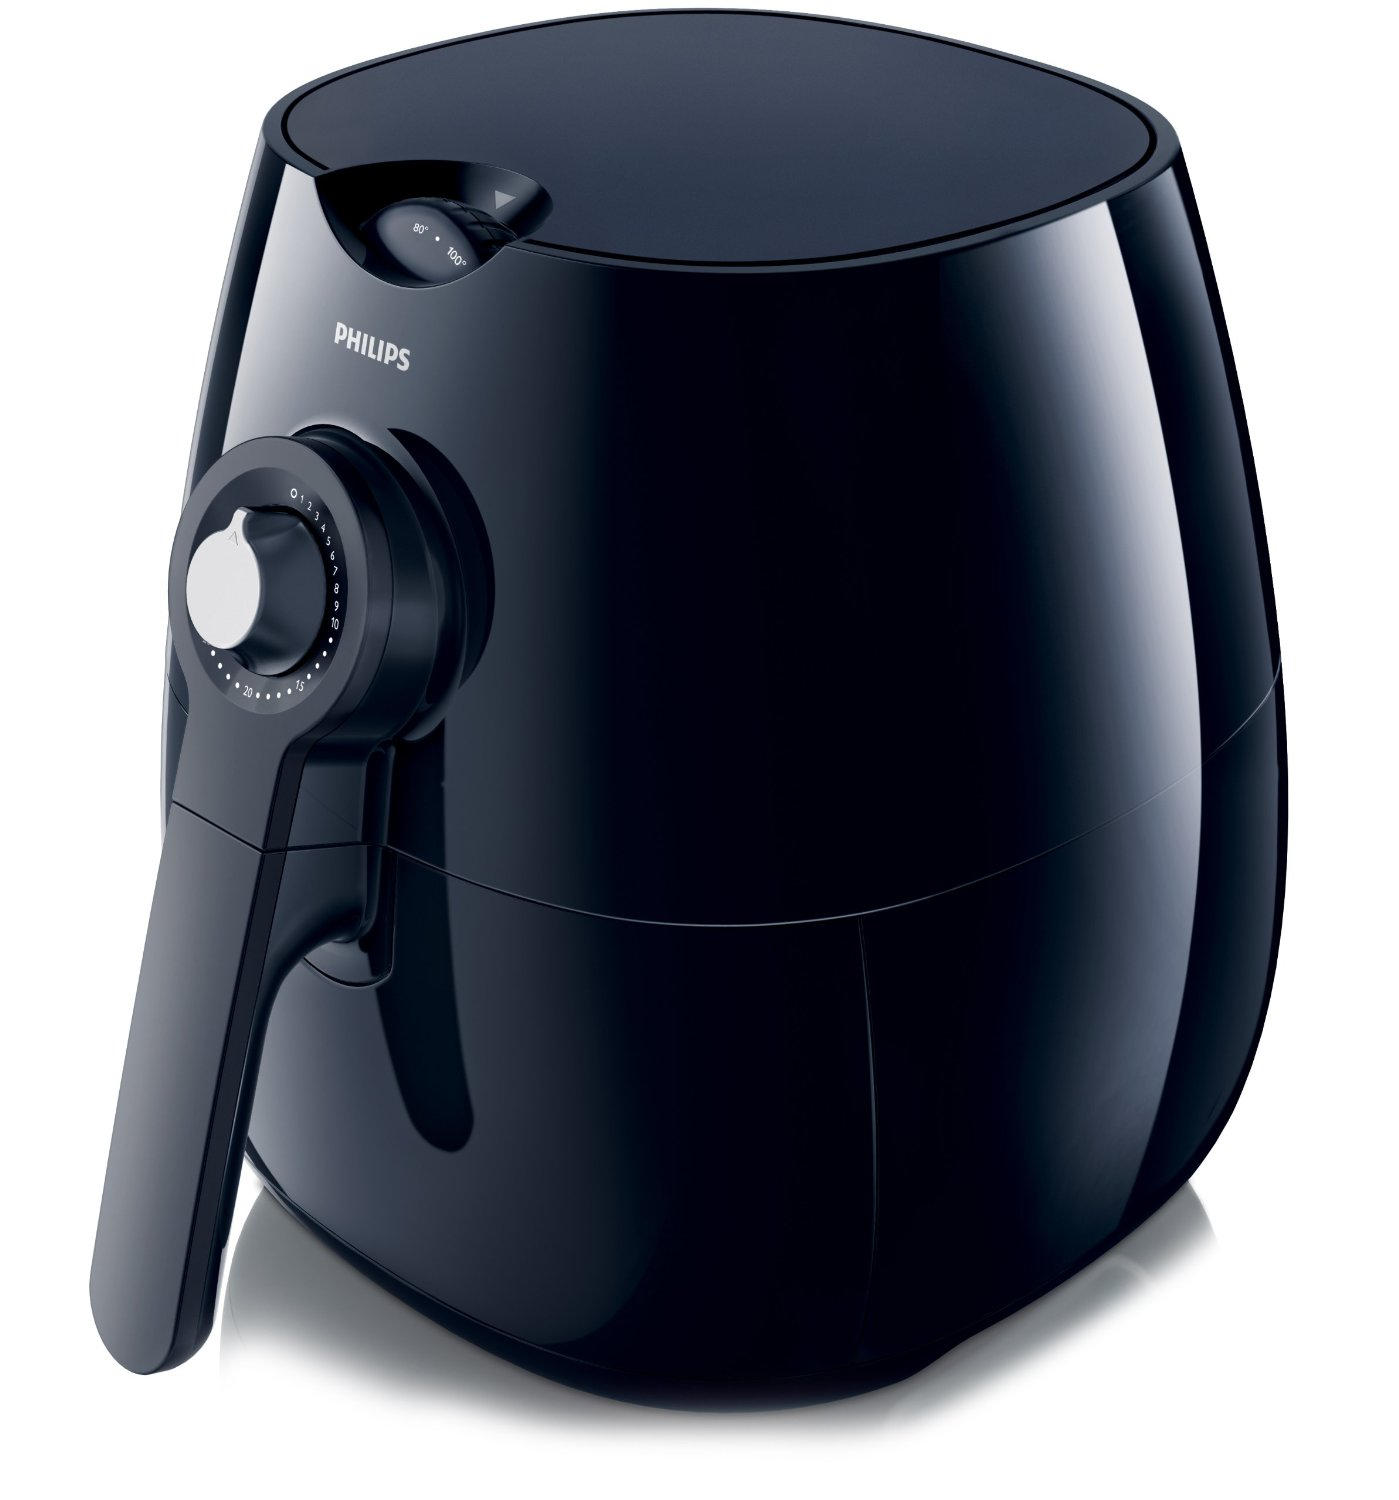 Philips airfryer healthier low fat oil free healthy air fryer multi